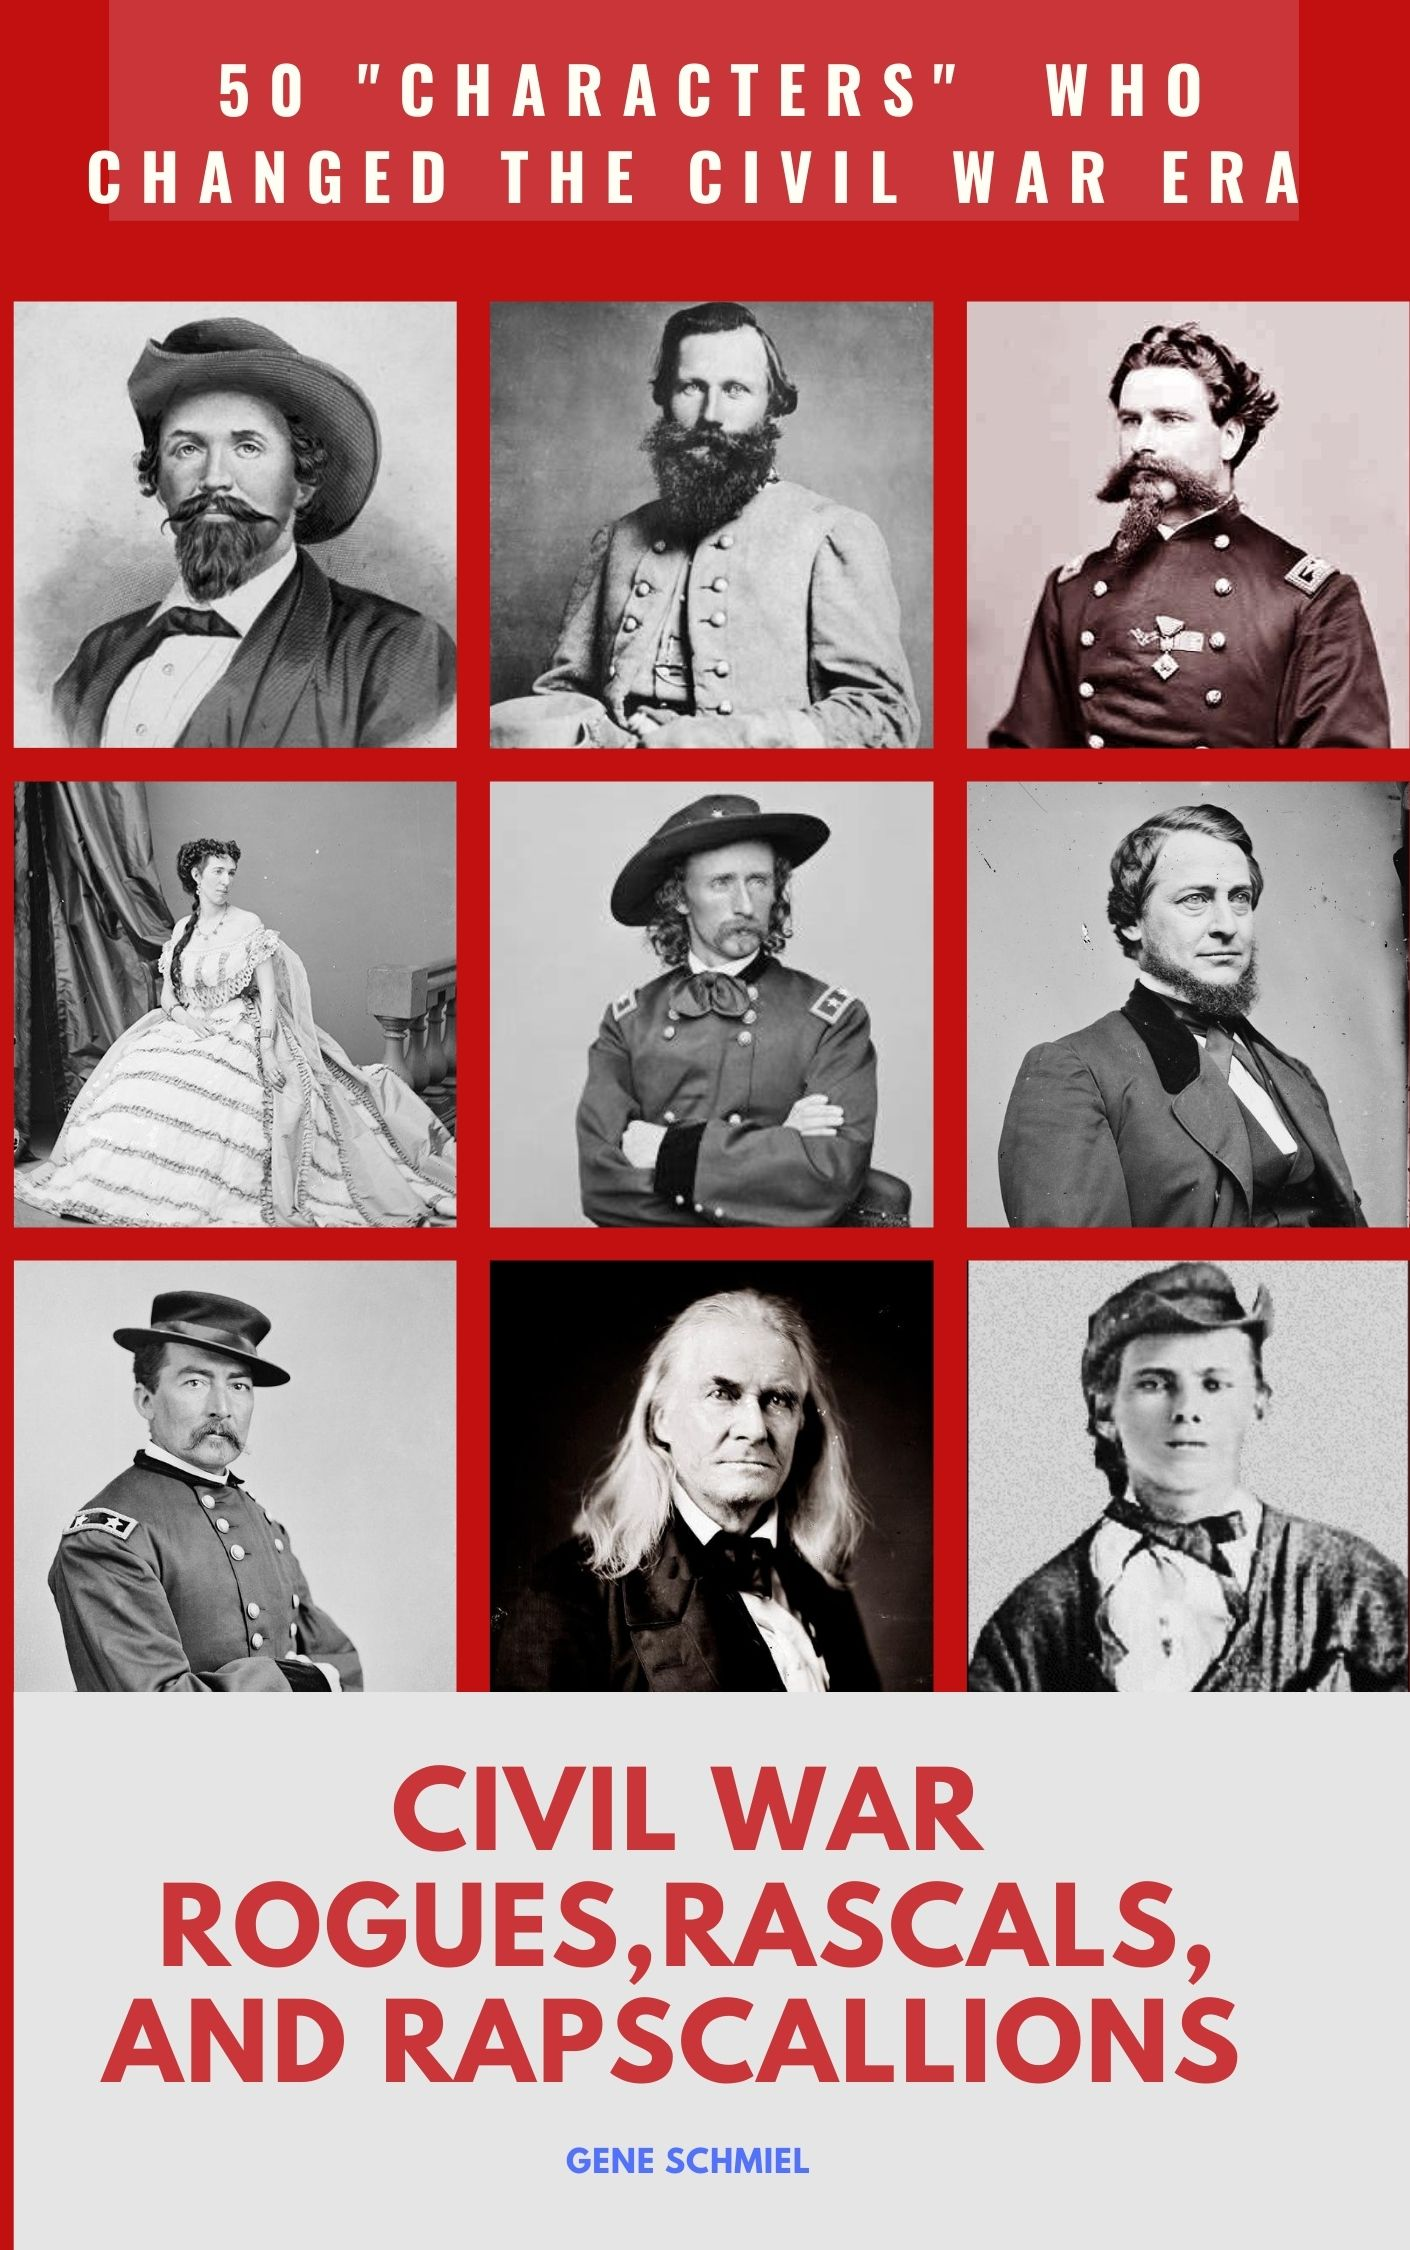 50 MEN AND WOMEN WHO INALTERABLY CHANGED THE CIVIL WAR ERA AND AMERICAN HISTORY